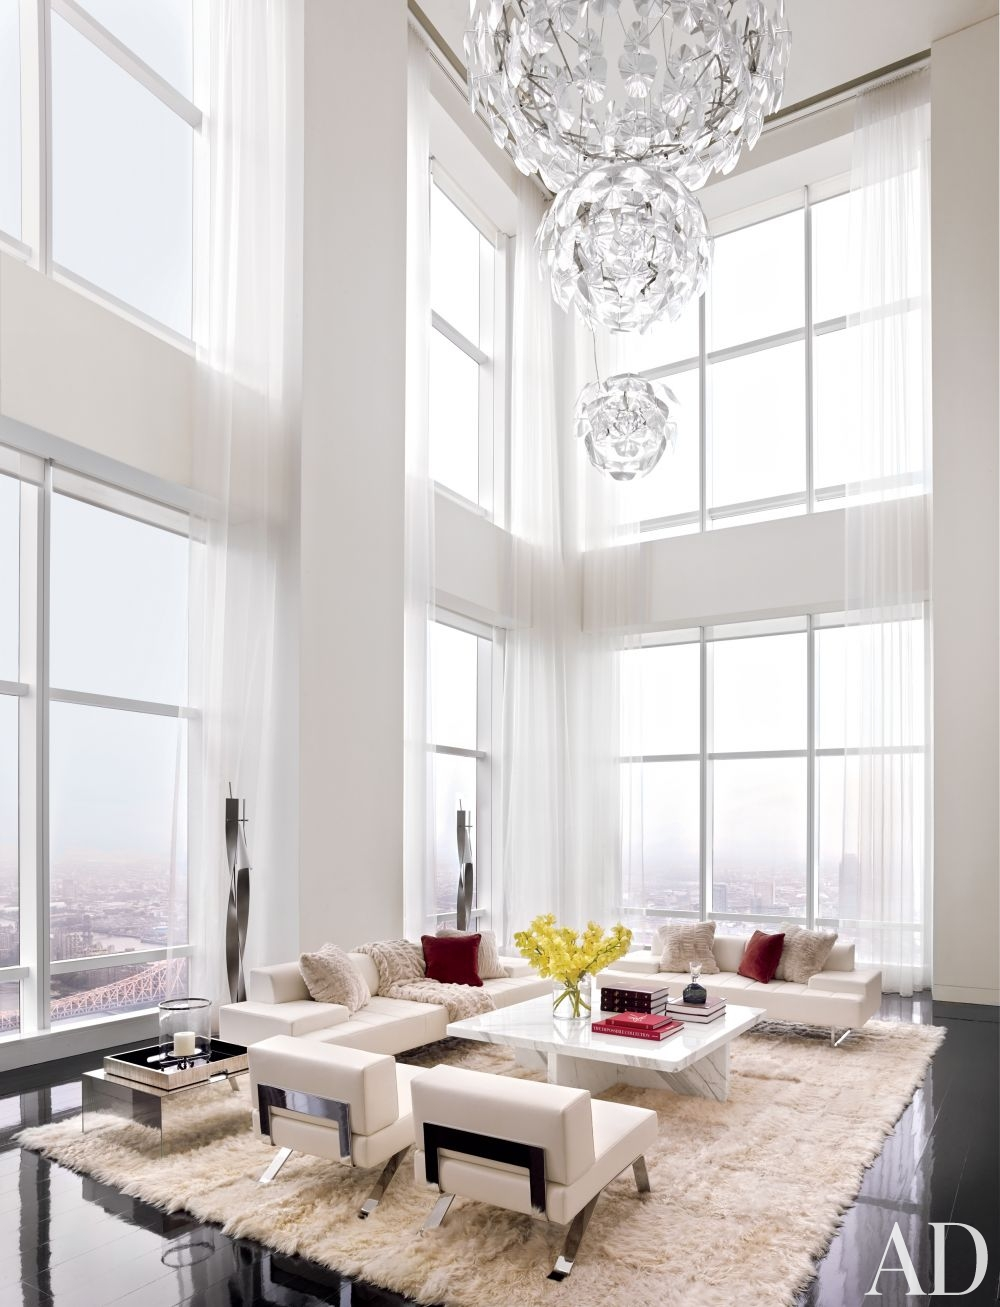 White living room ideas stellar interior design for Beautiful modern living rooms